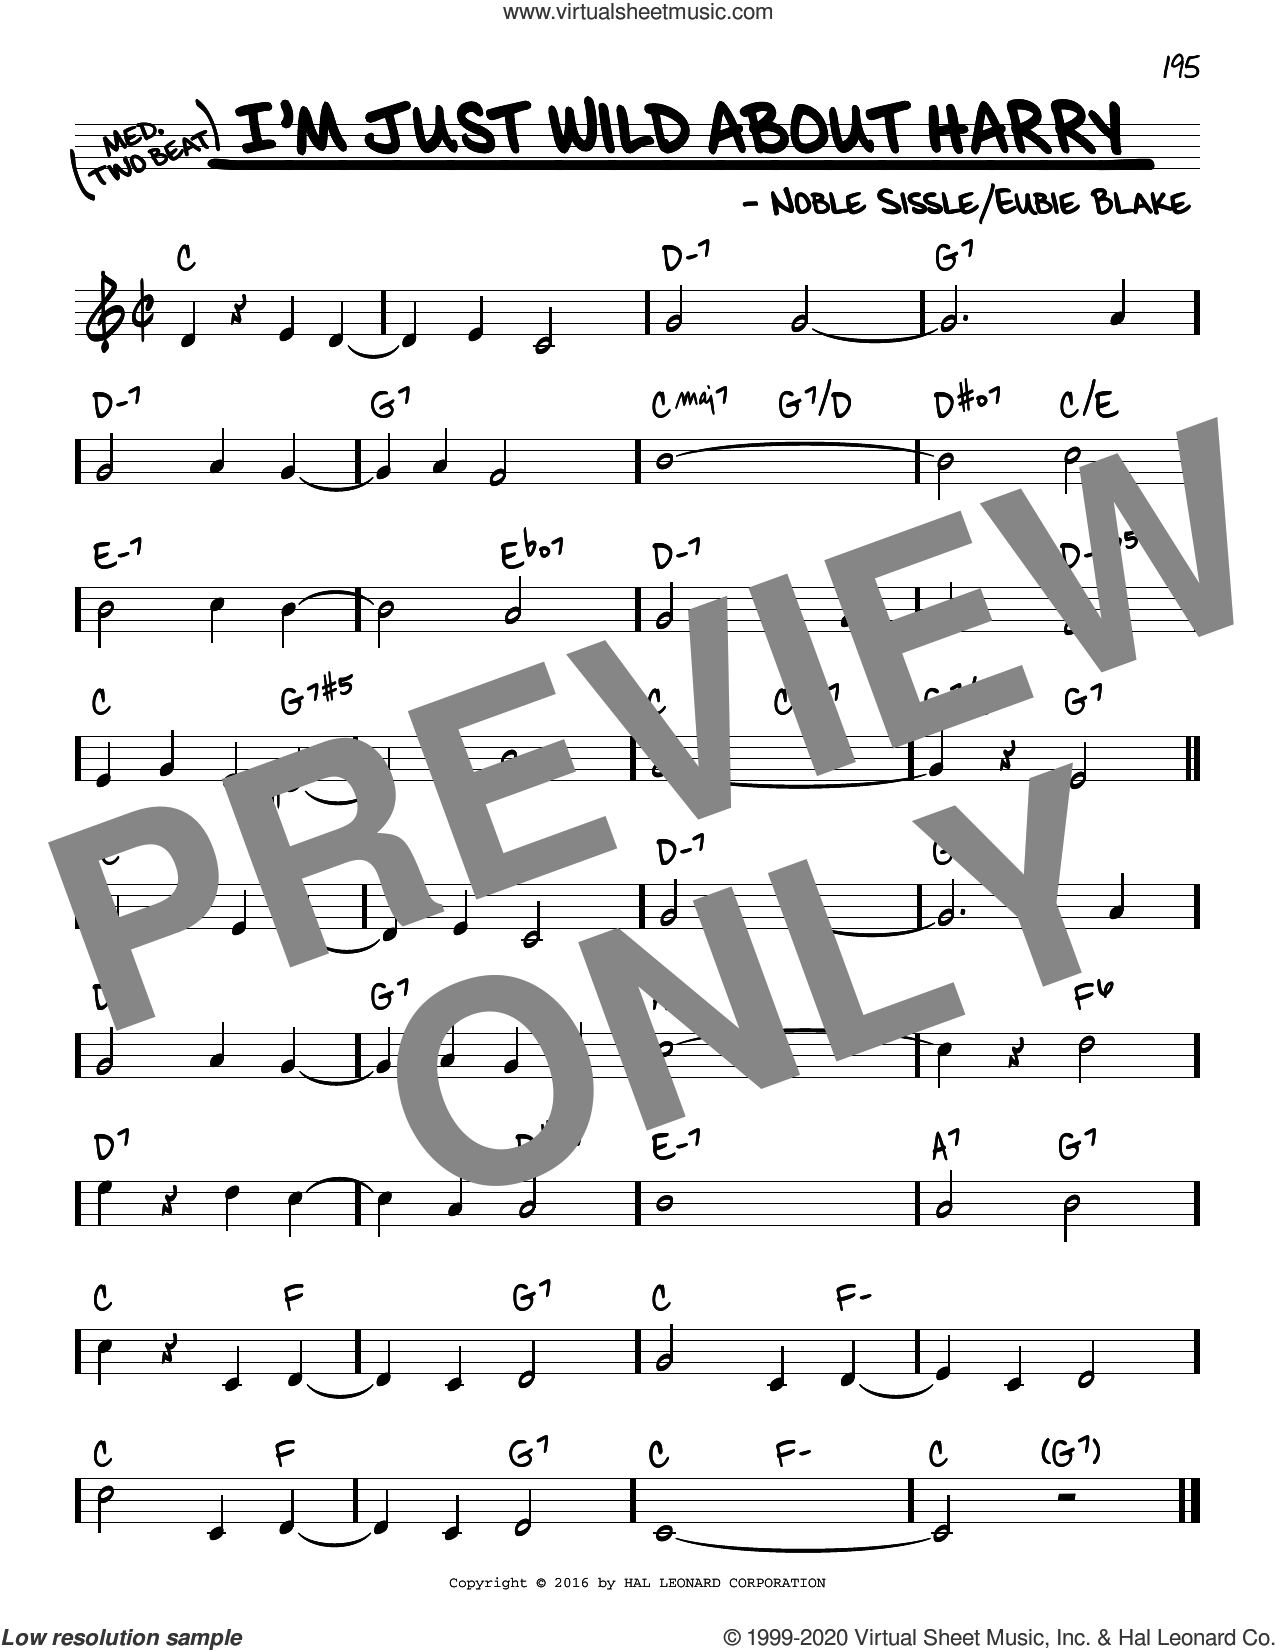 I'm Just Wild About Harry sheet music for voice and other instruments (real book) by Noble Sissle and Eubie Blake, intermediate skill level